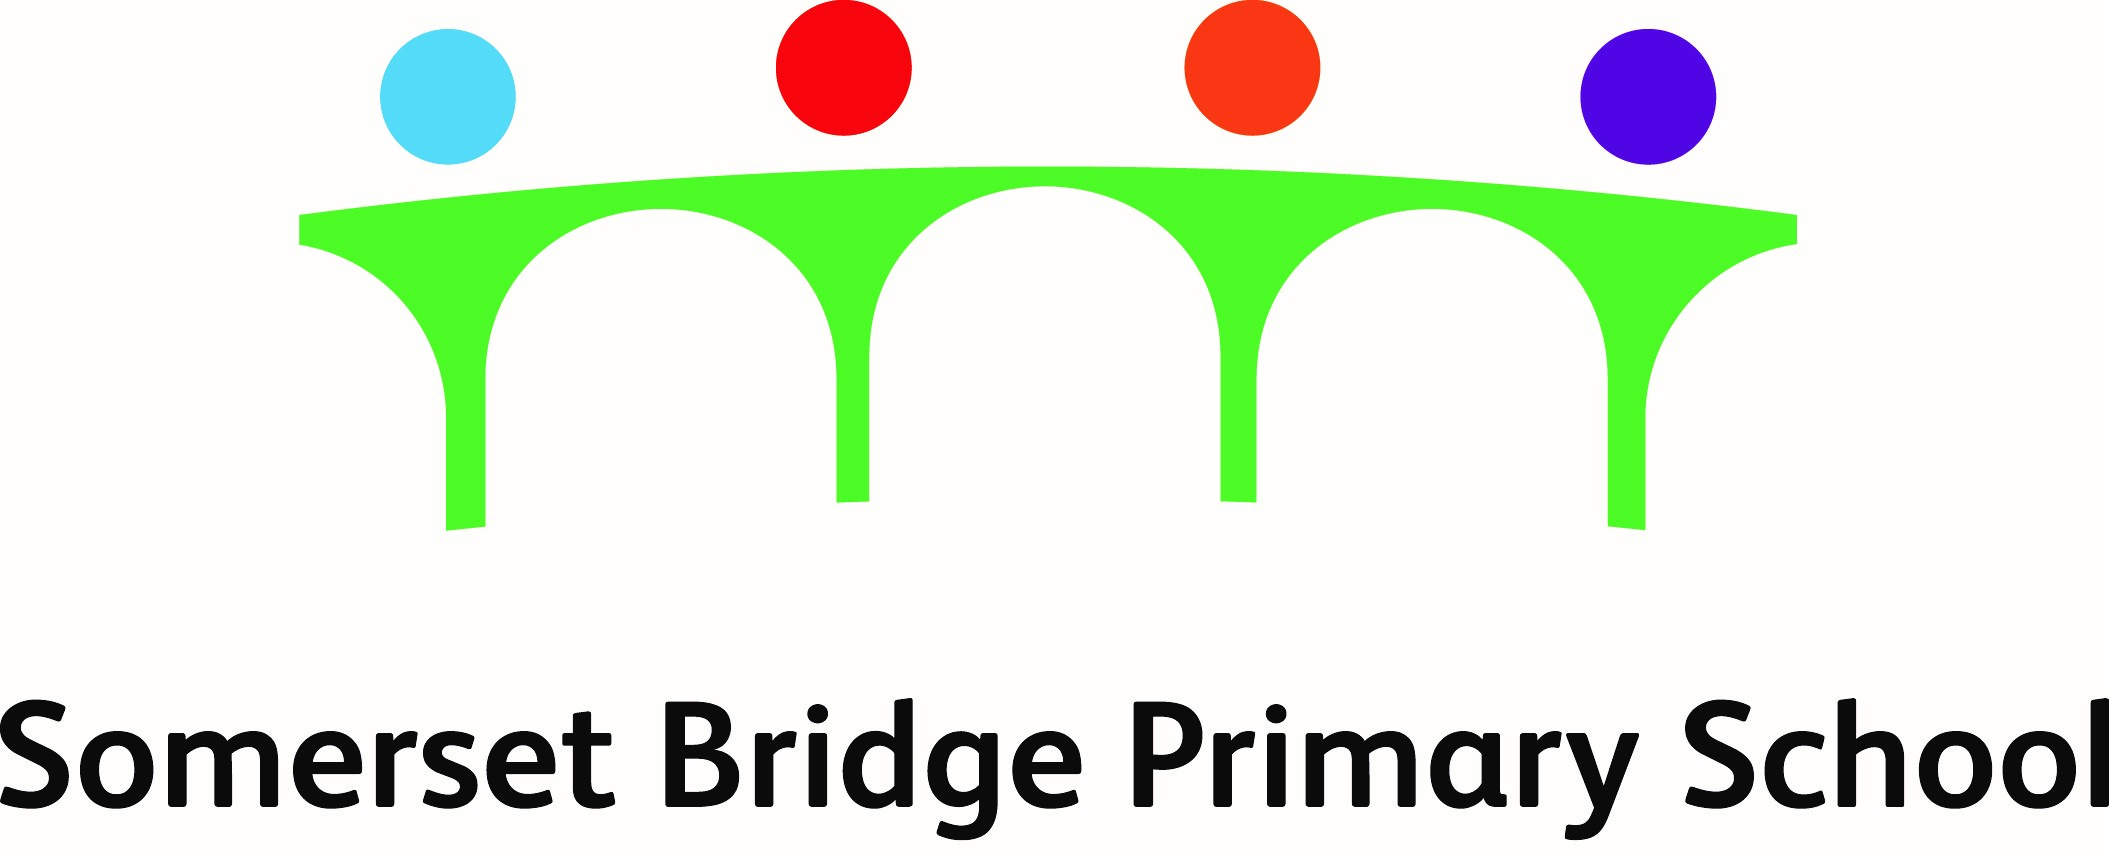 Somerset Bridge Primary School & Nursery